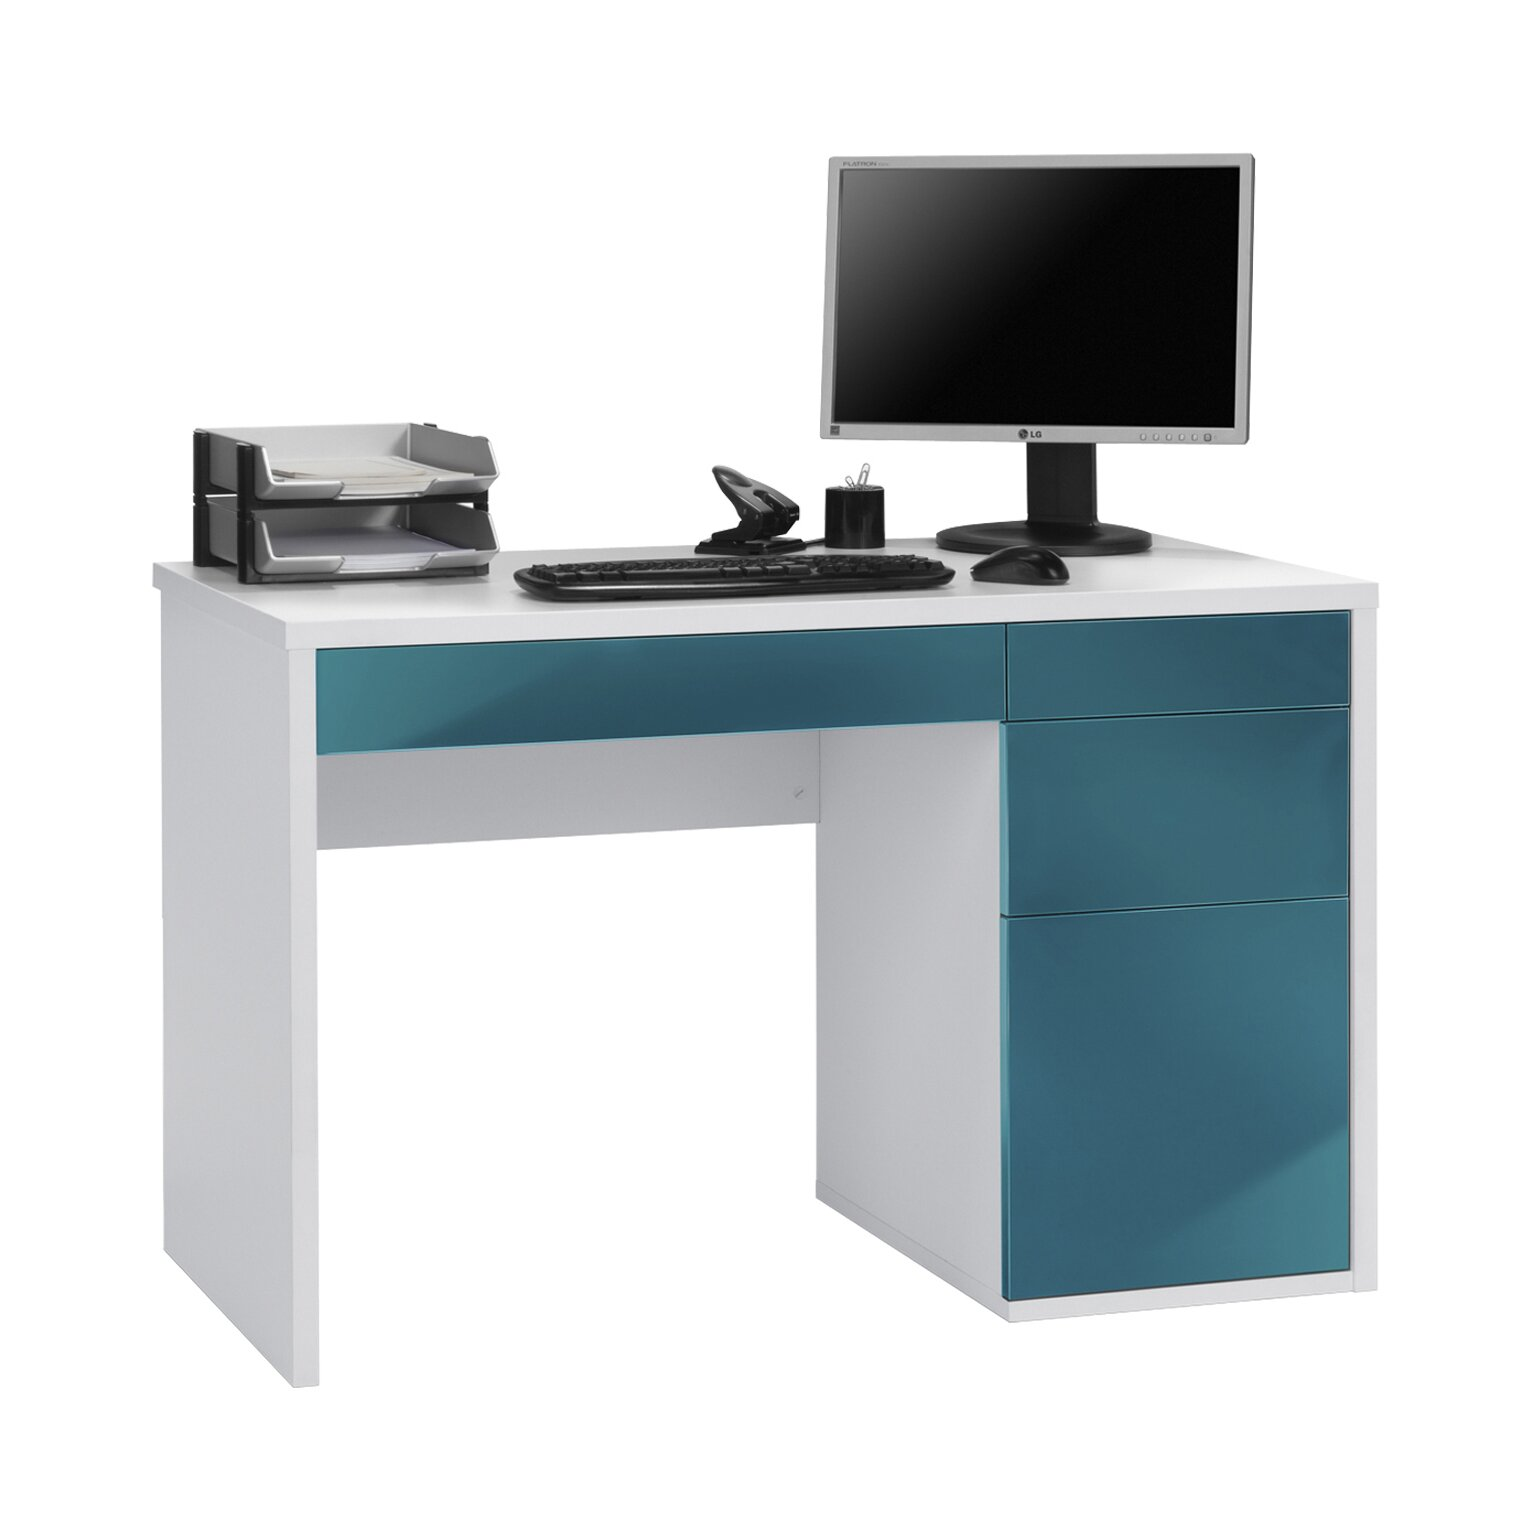 Maja M Bel Alex Writing Desk Reviews Wayfair Uk